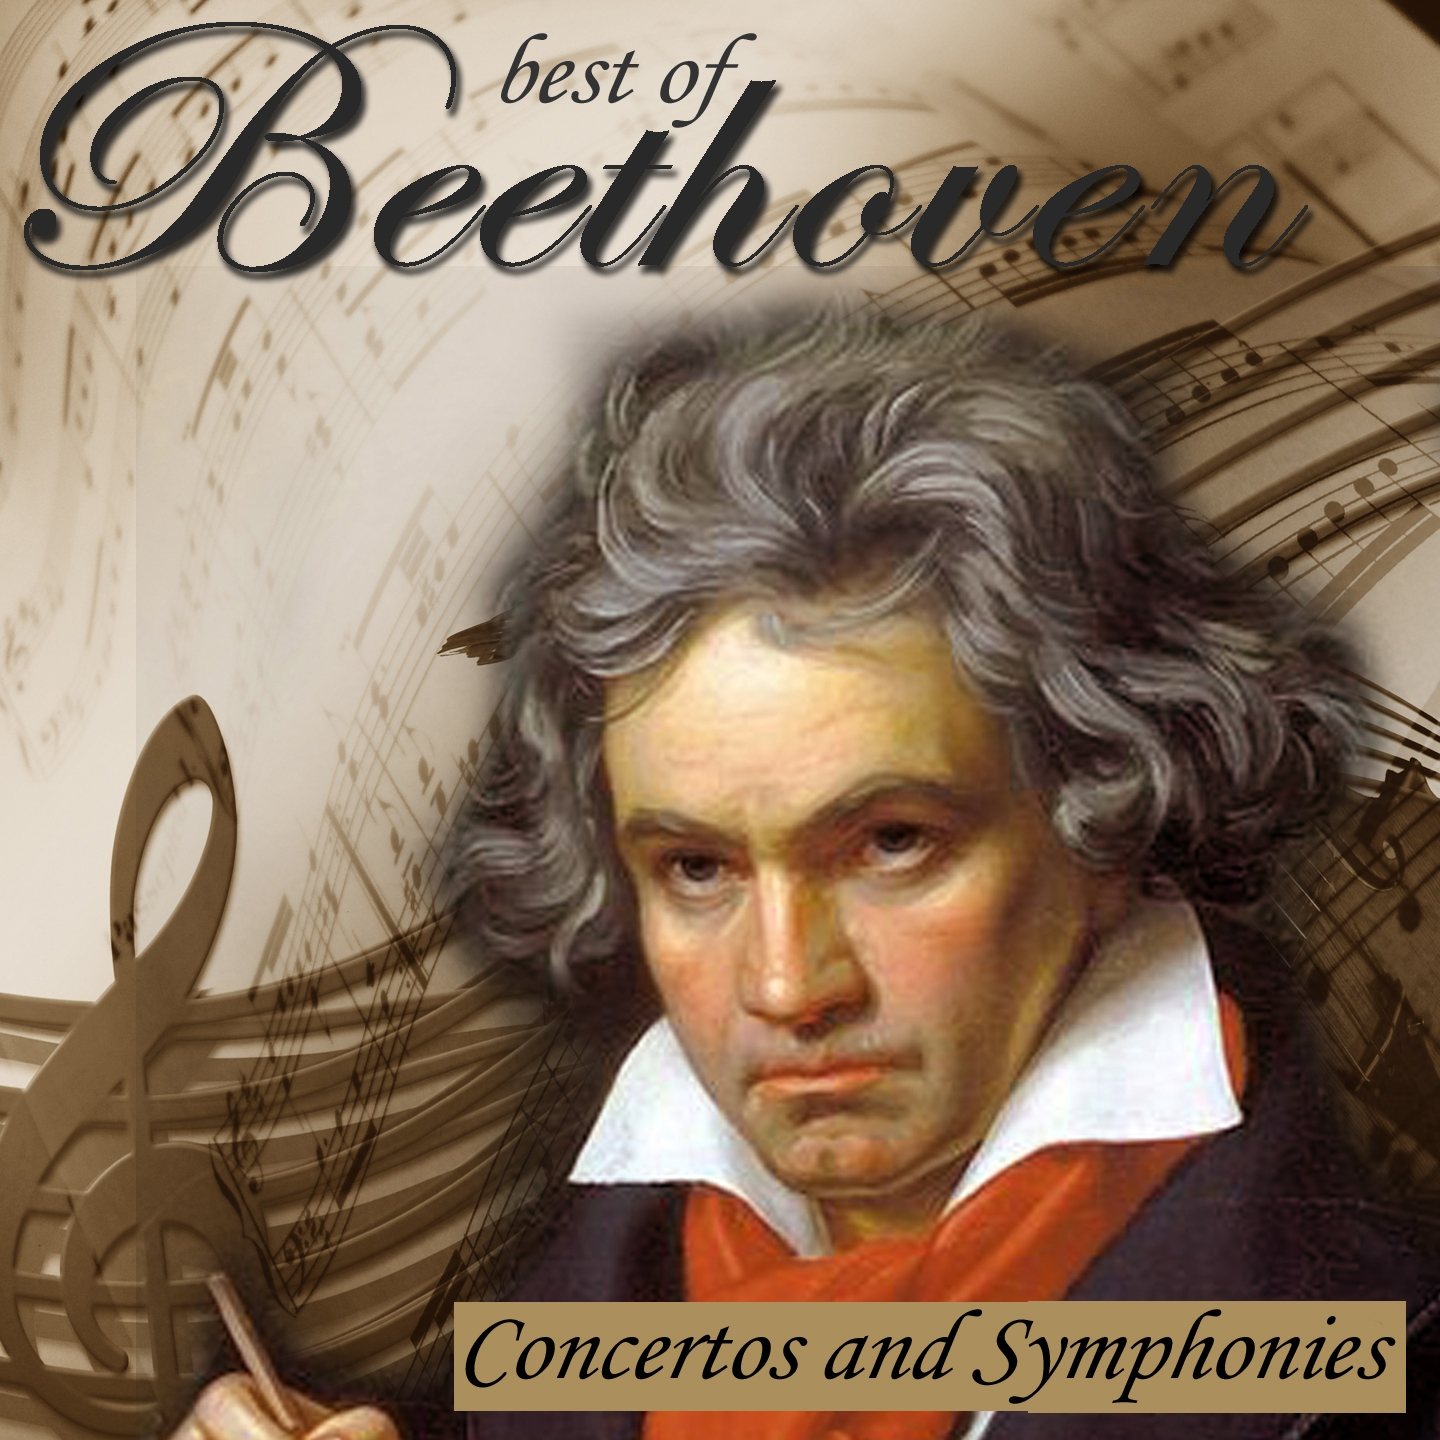 The Best of Beethoven: Concertos and Symphonies